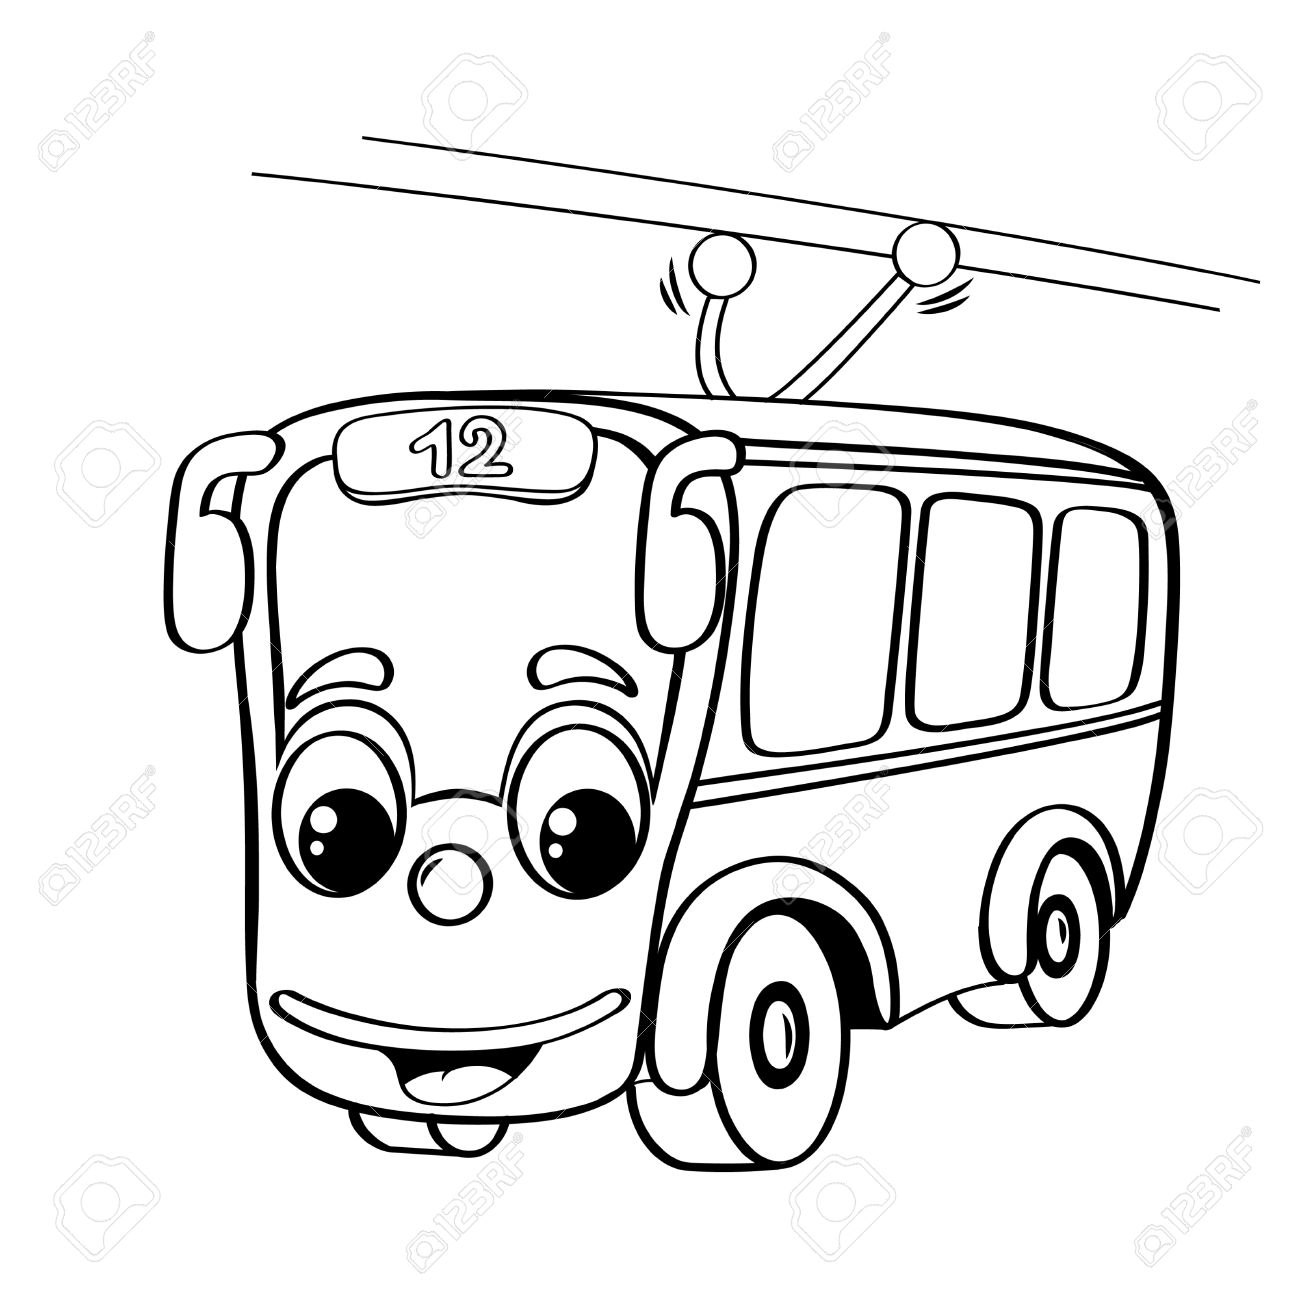 1300x1300 Funny Cartoon Trolley Bus. Black And White Illustration